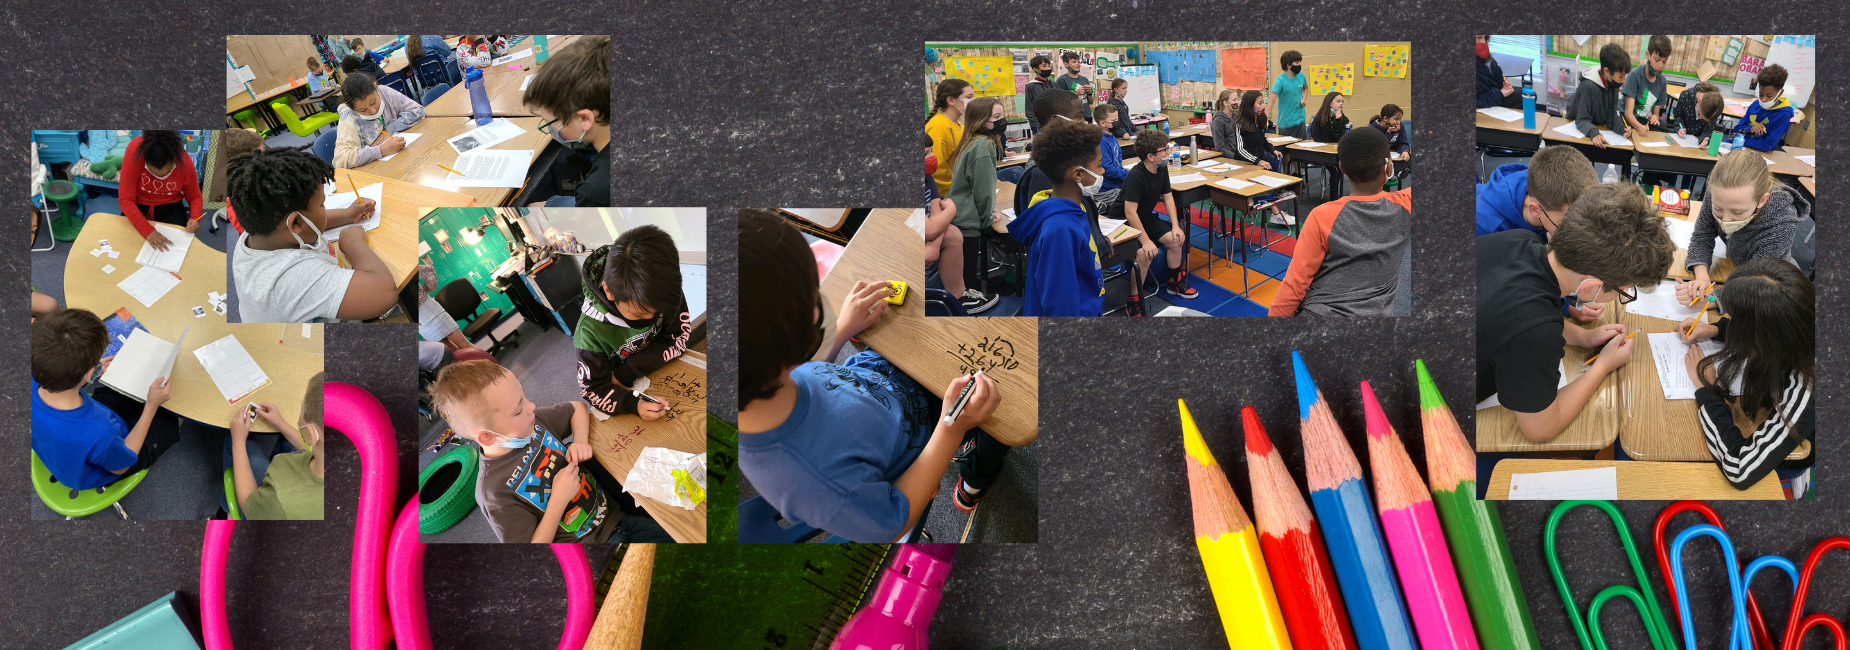 collage of elementary students busy working in class